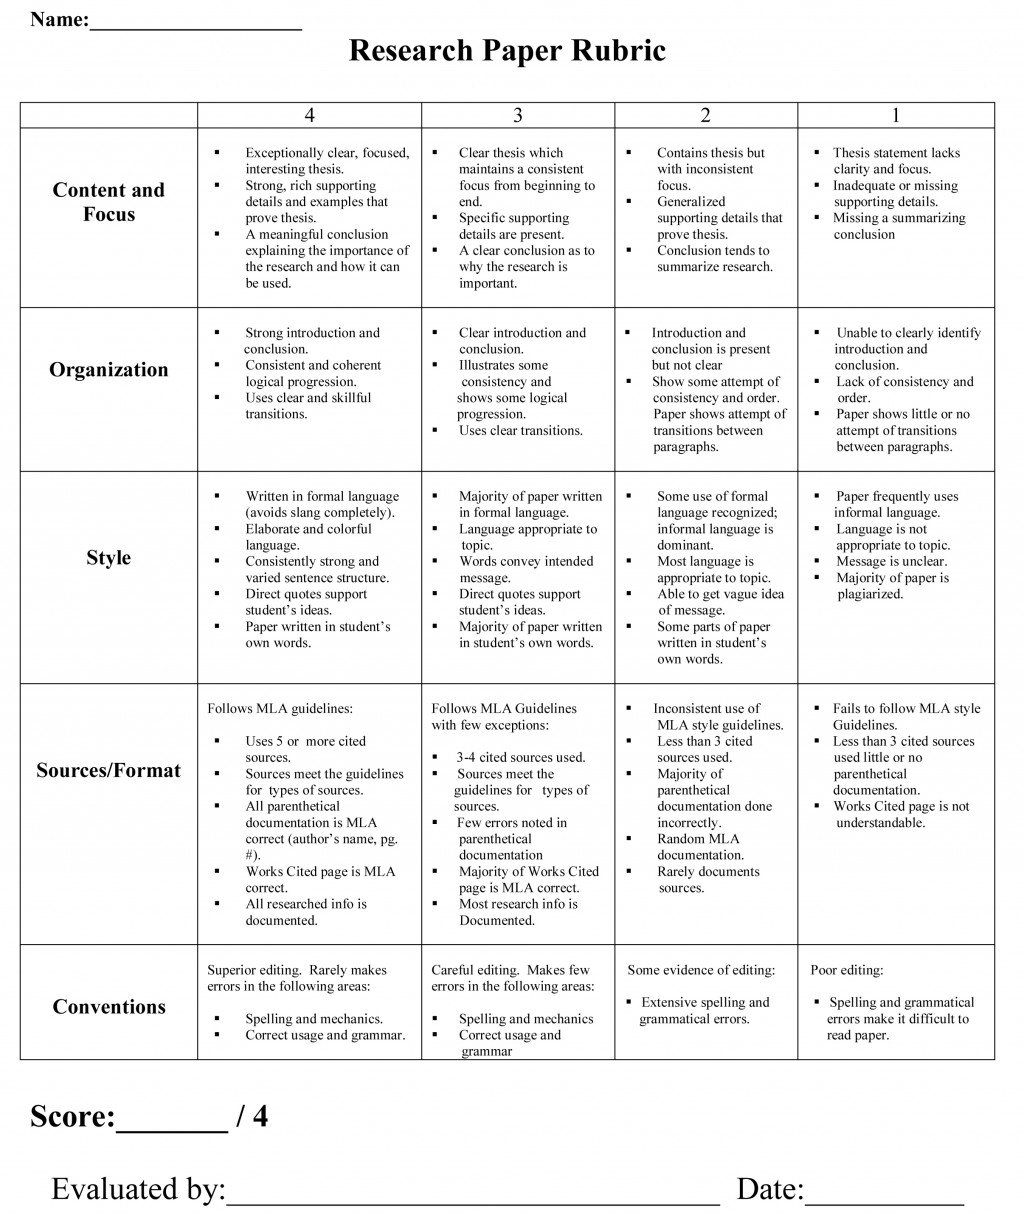 001 Research Paper Free Sample Argument Wondrous Rubric Large